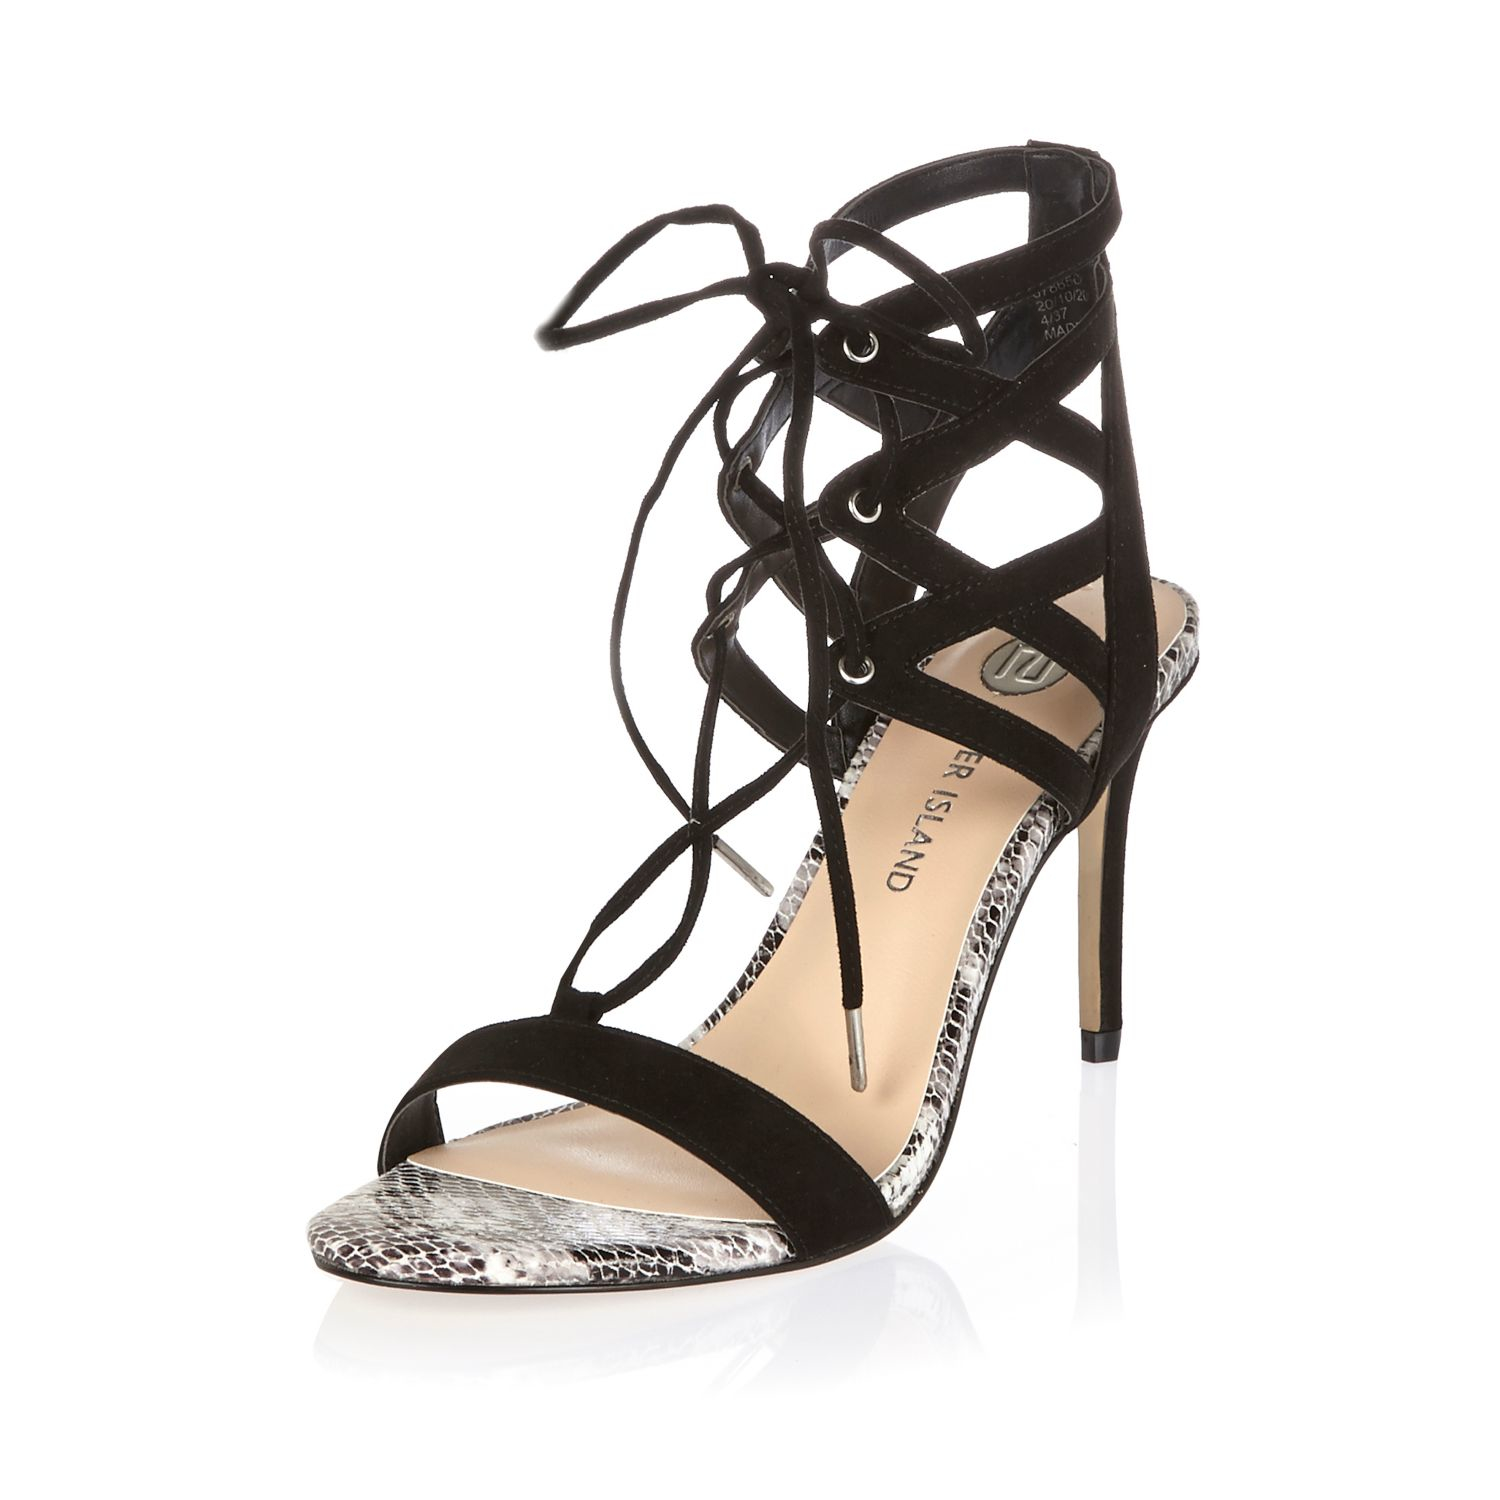 fake for sale River Island heeled sandals with scallop detail in black outlet discount sale hpRcgqA1